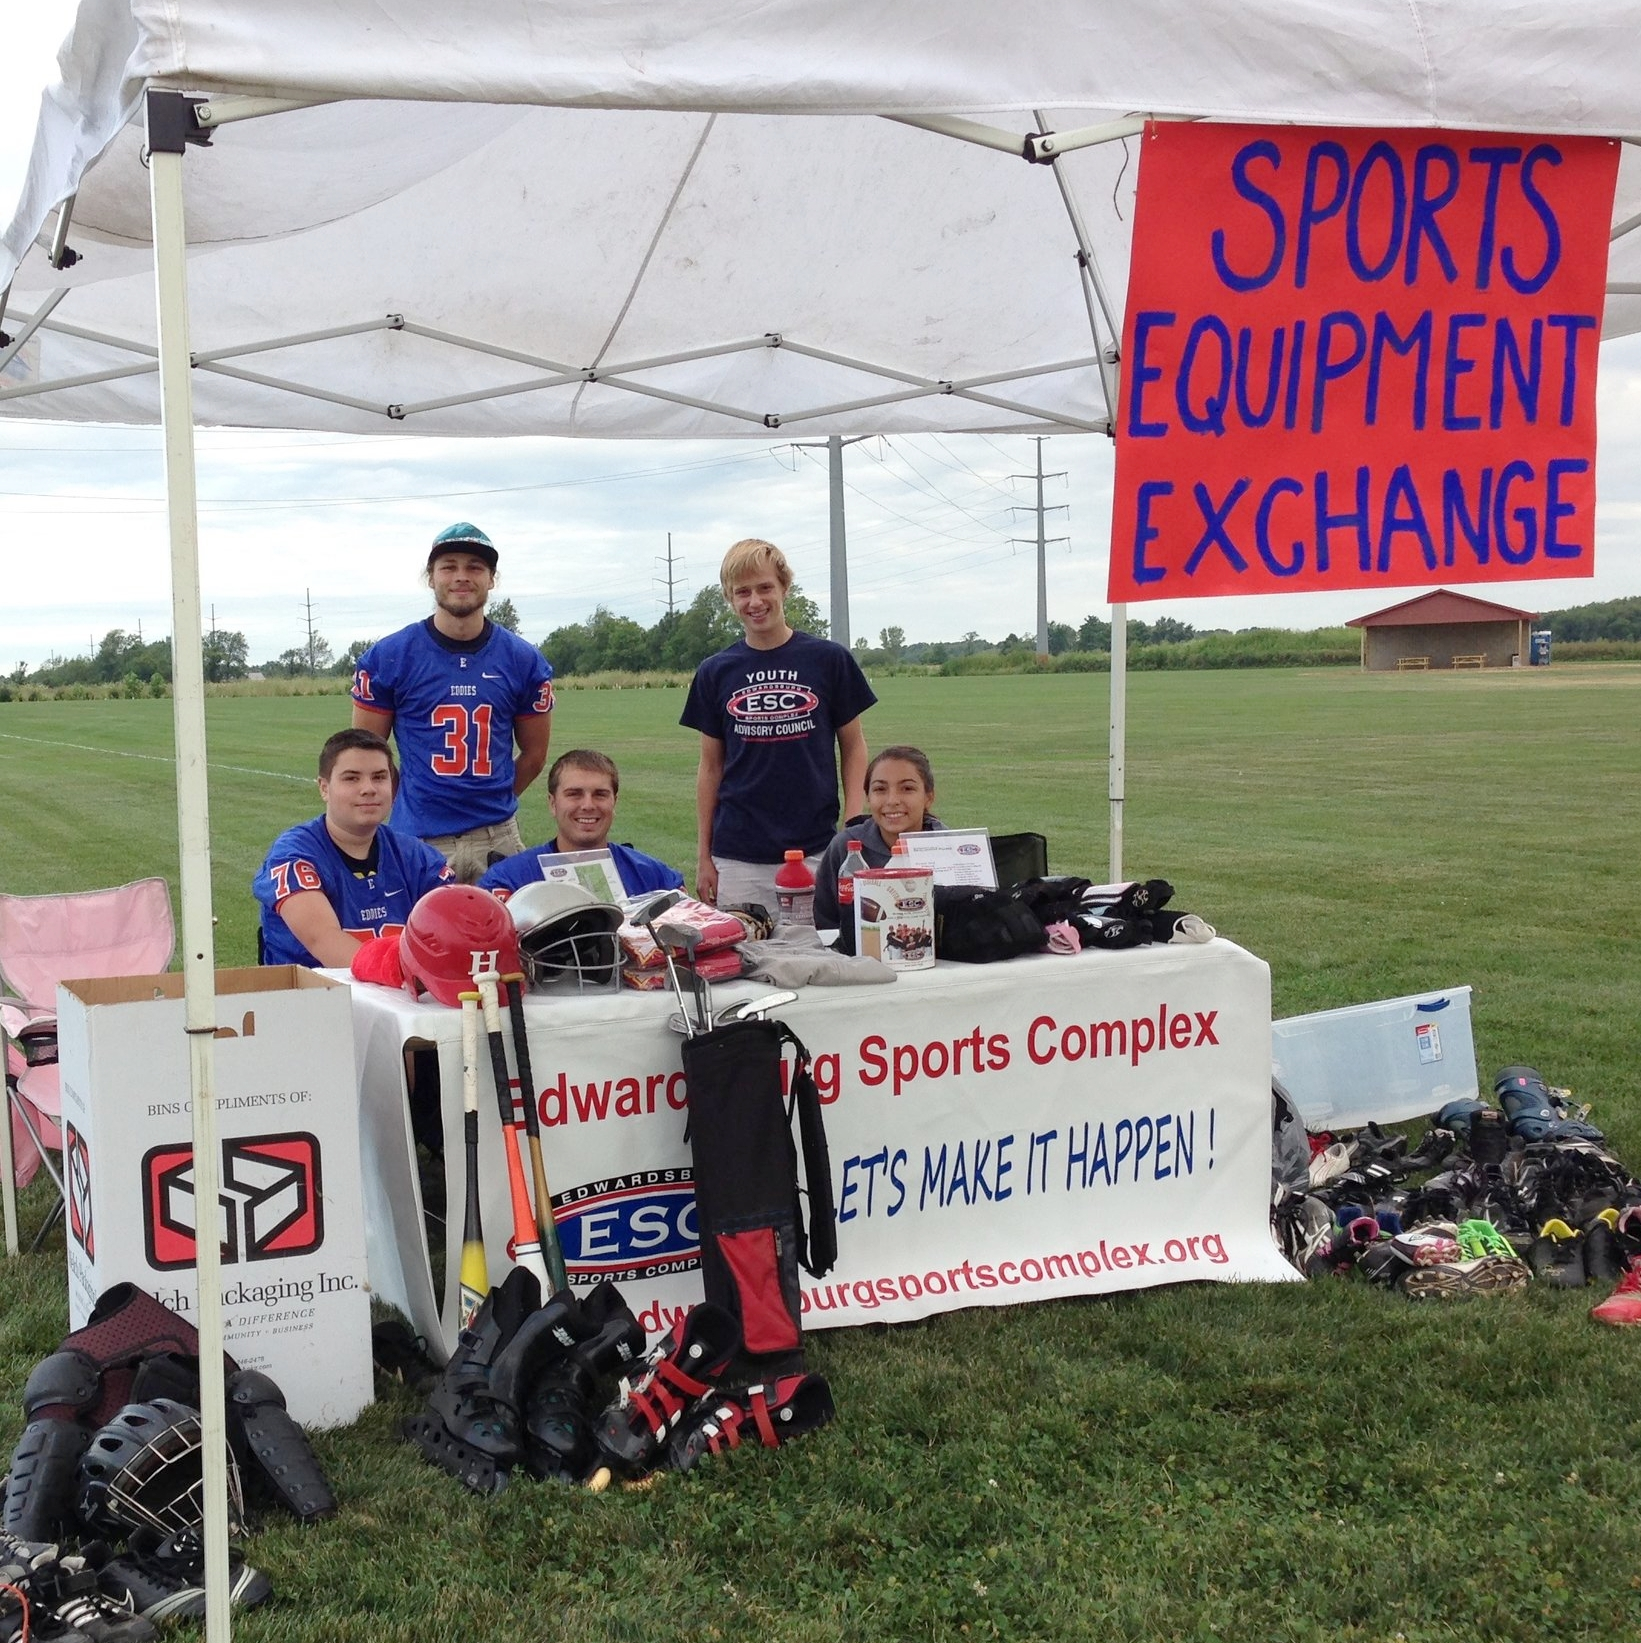 Sports Equipment Exchange booth at the 2015 U.S. 12 Garage Sale.